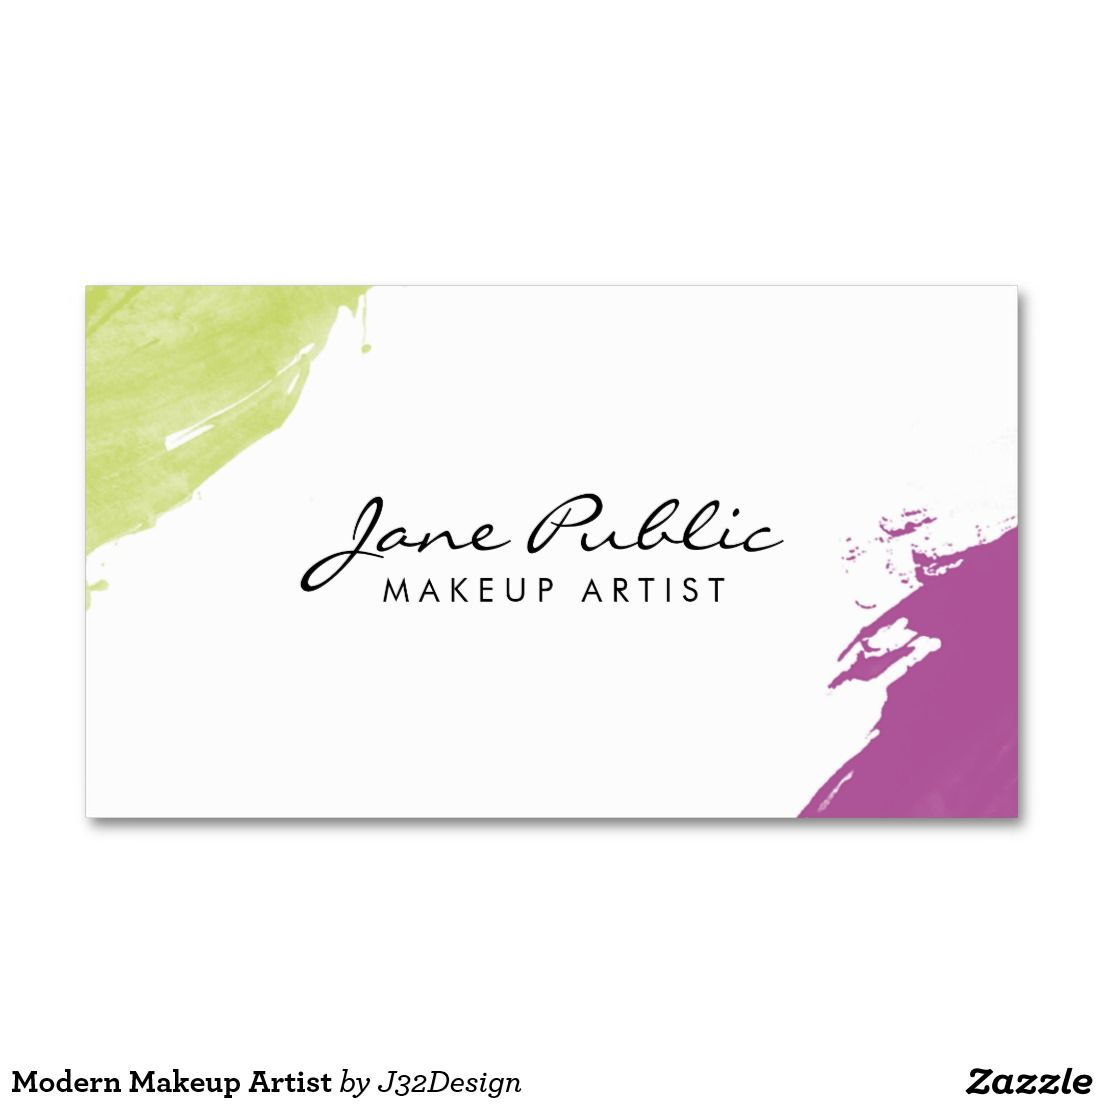 Modern makeup artist business card pinterest business cards cards a modern business cards design with colorful green and purple painted corners the design is two sided and features your name and job title reheart Choice Image